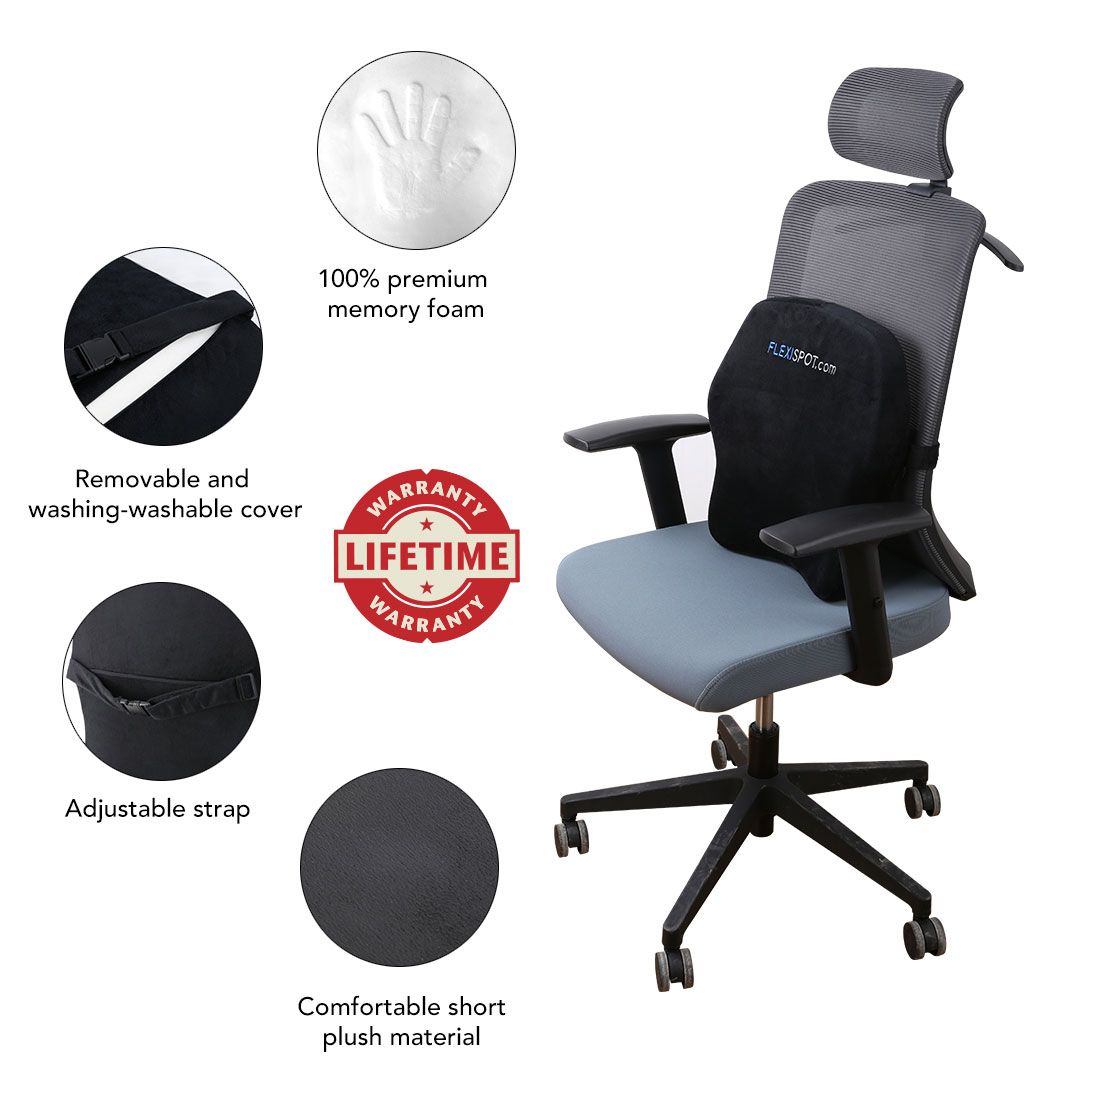 Sensational Lumbar Support Pillow Bc1 Caraccident5 Cool Chair Designs And Ideas Caraccident5Info